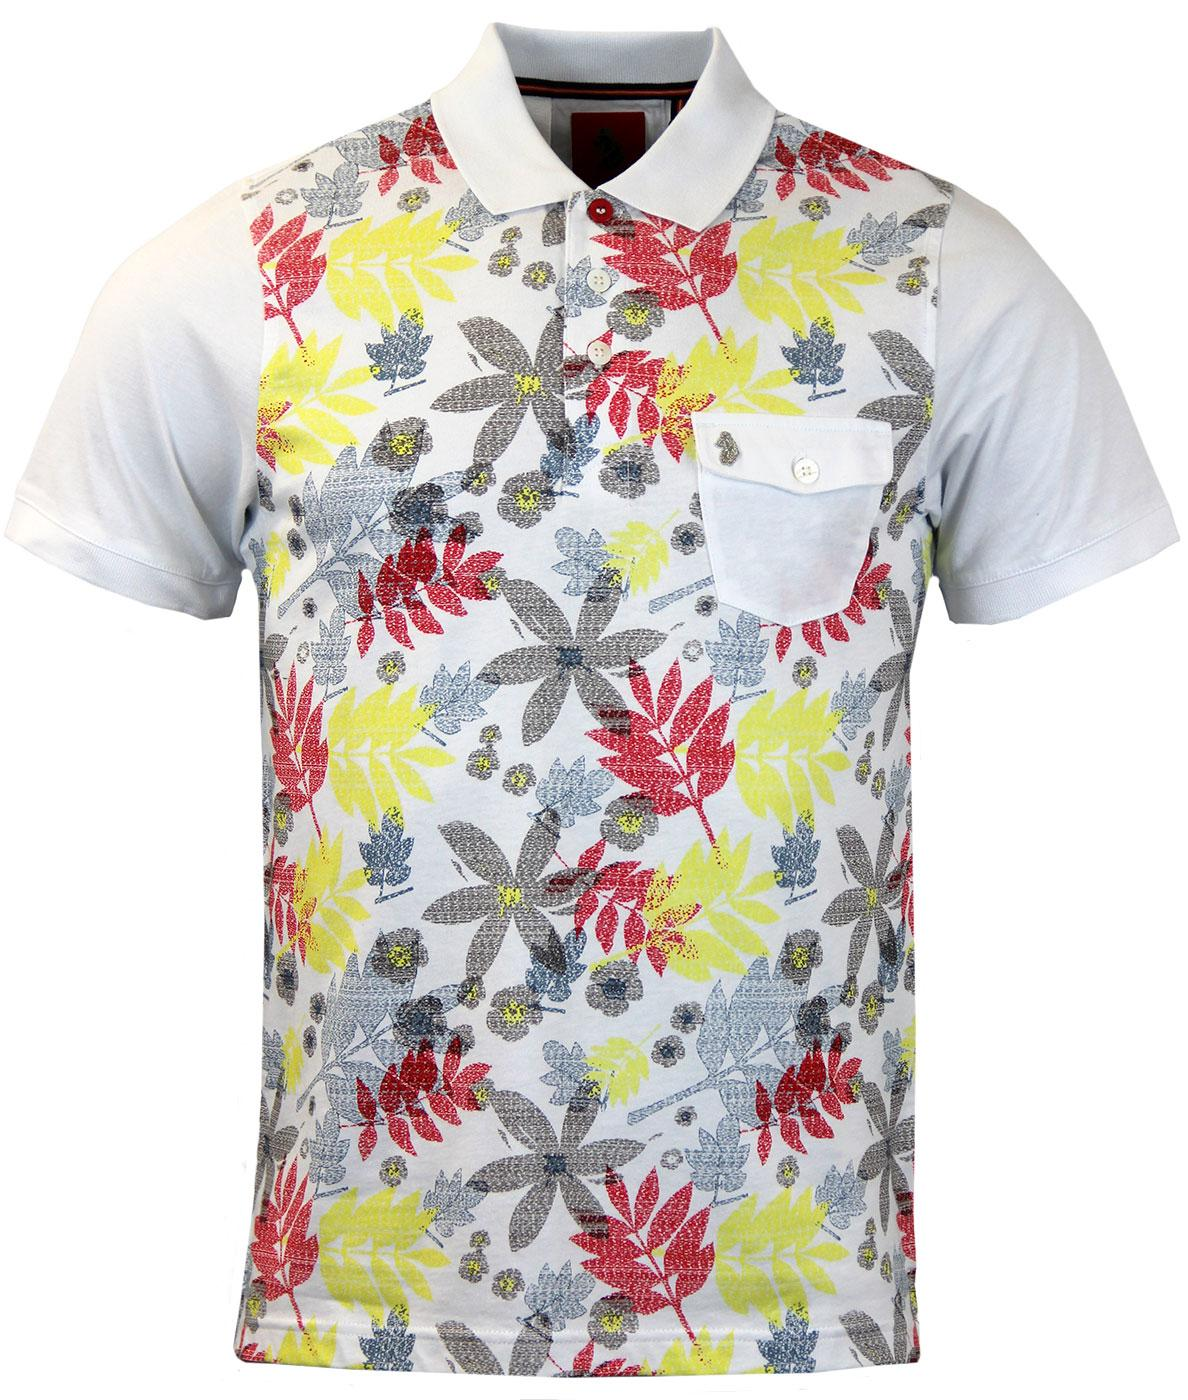 Tapestry LUKE 1977 Retro Floral Printed Polo (W)